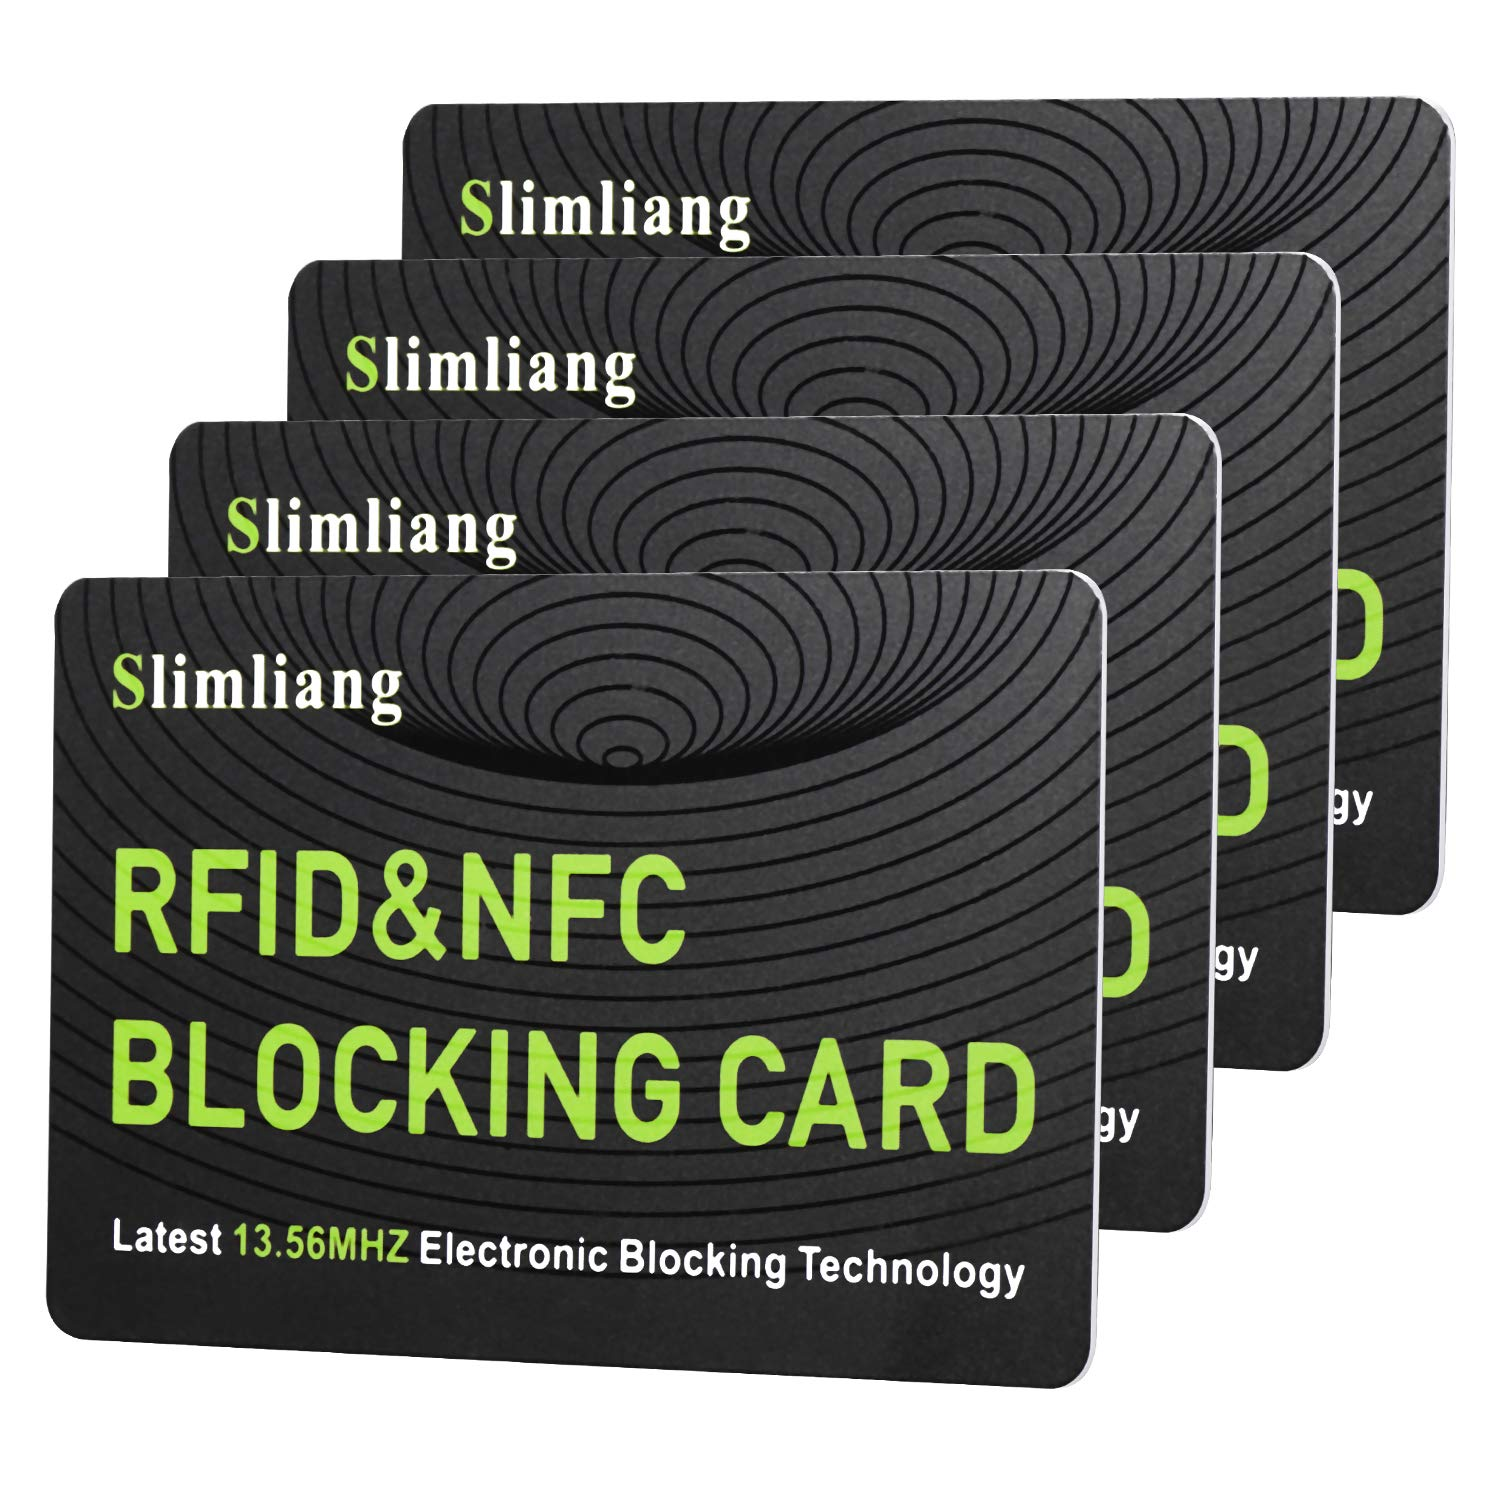 Blocking Fuss Free Protection Contactless Protector